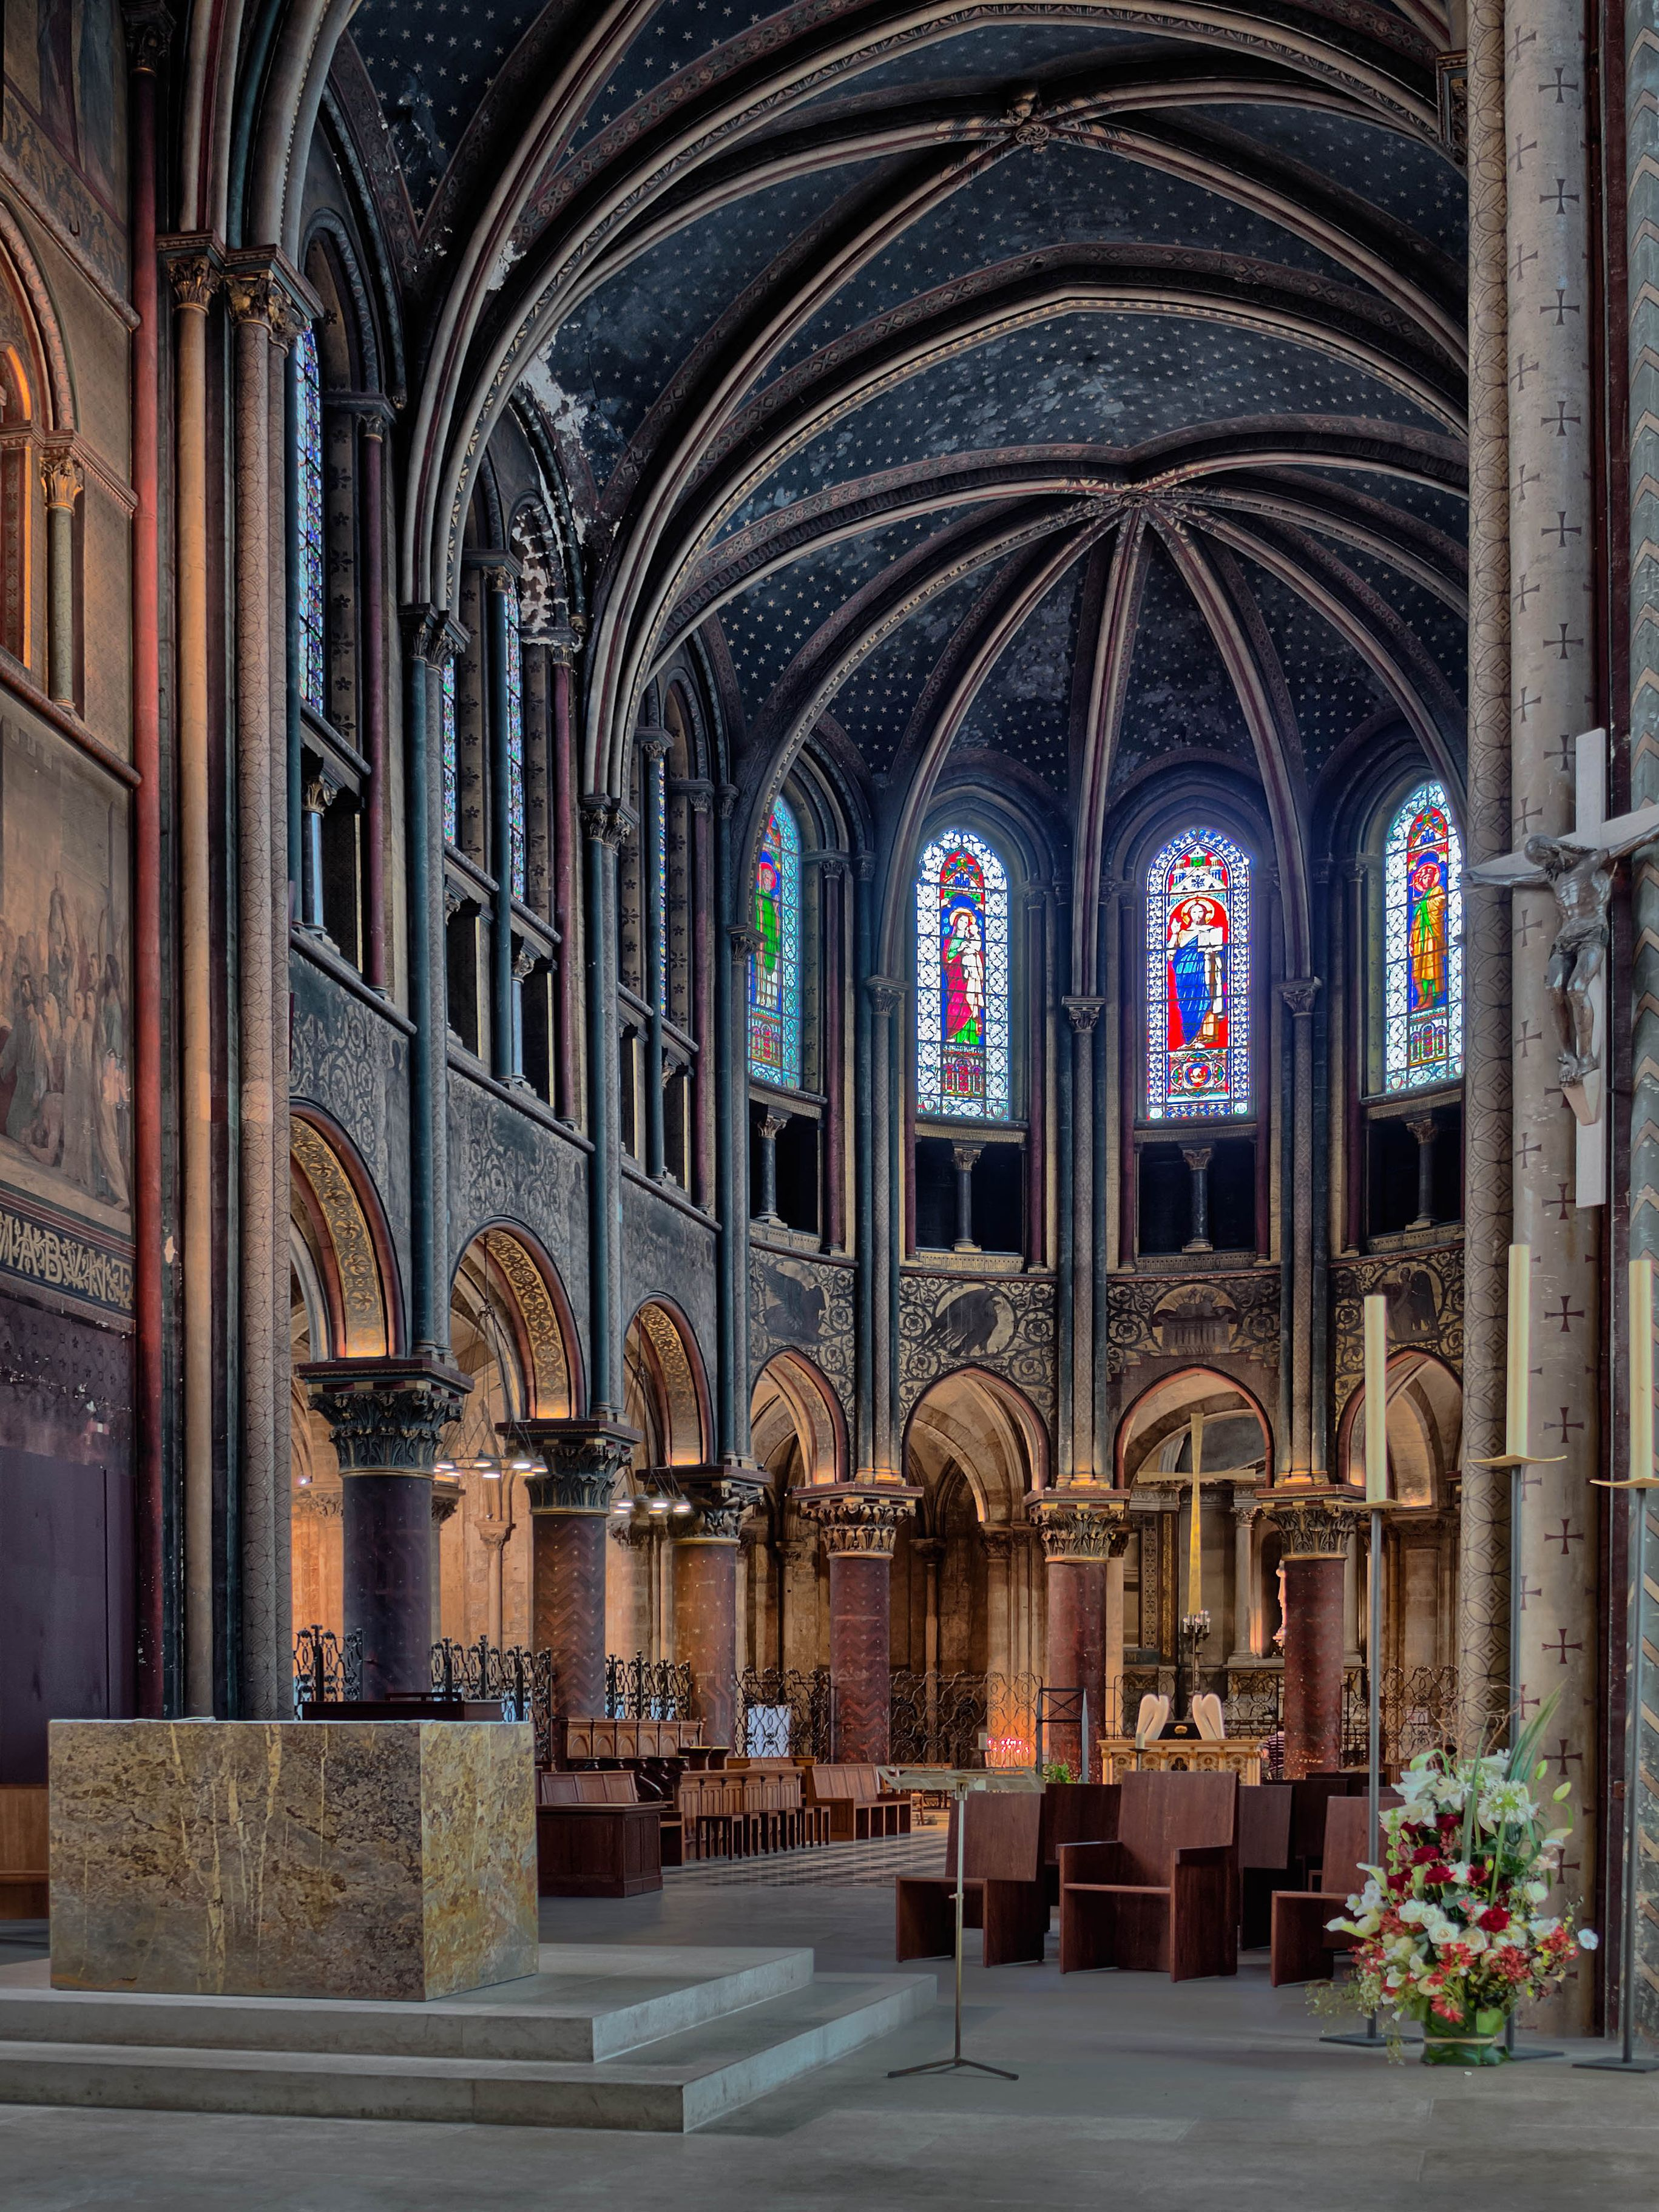 the Gothic Choir of the oldest church in Paris 6e, Saint-Germain-des-Prés. Founded in the 6th century, the structure is largely Romanesque.